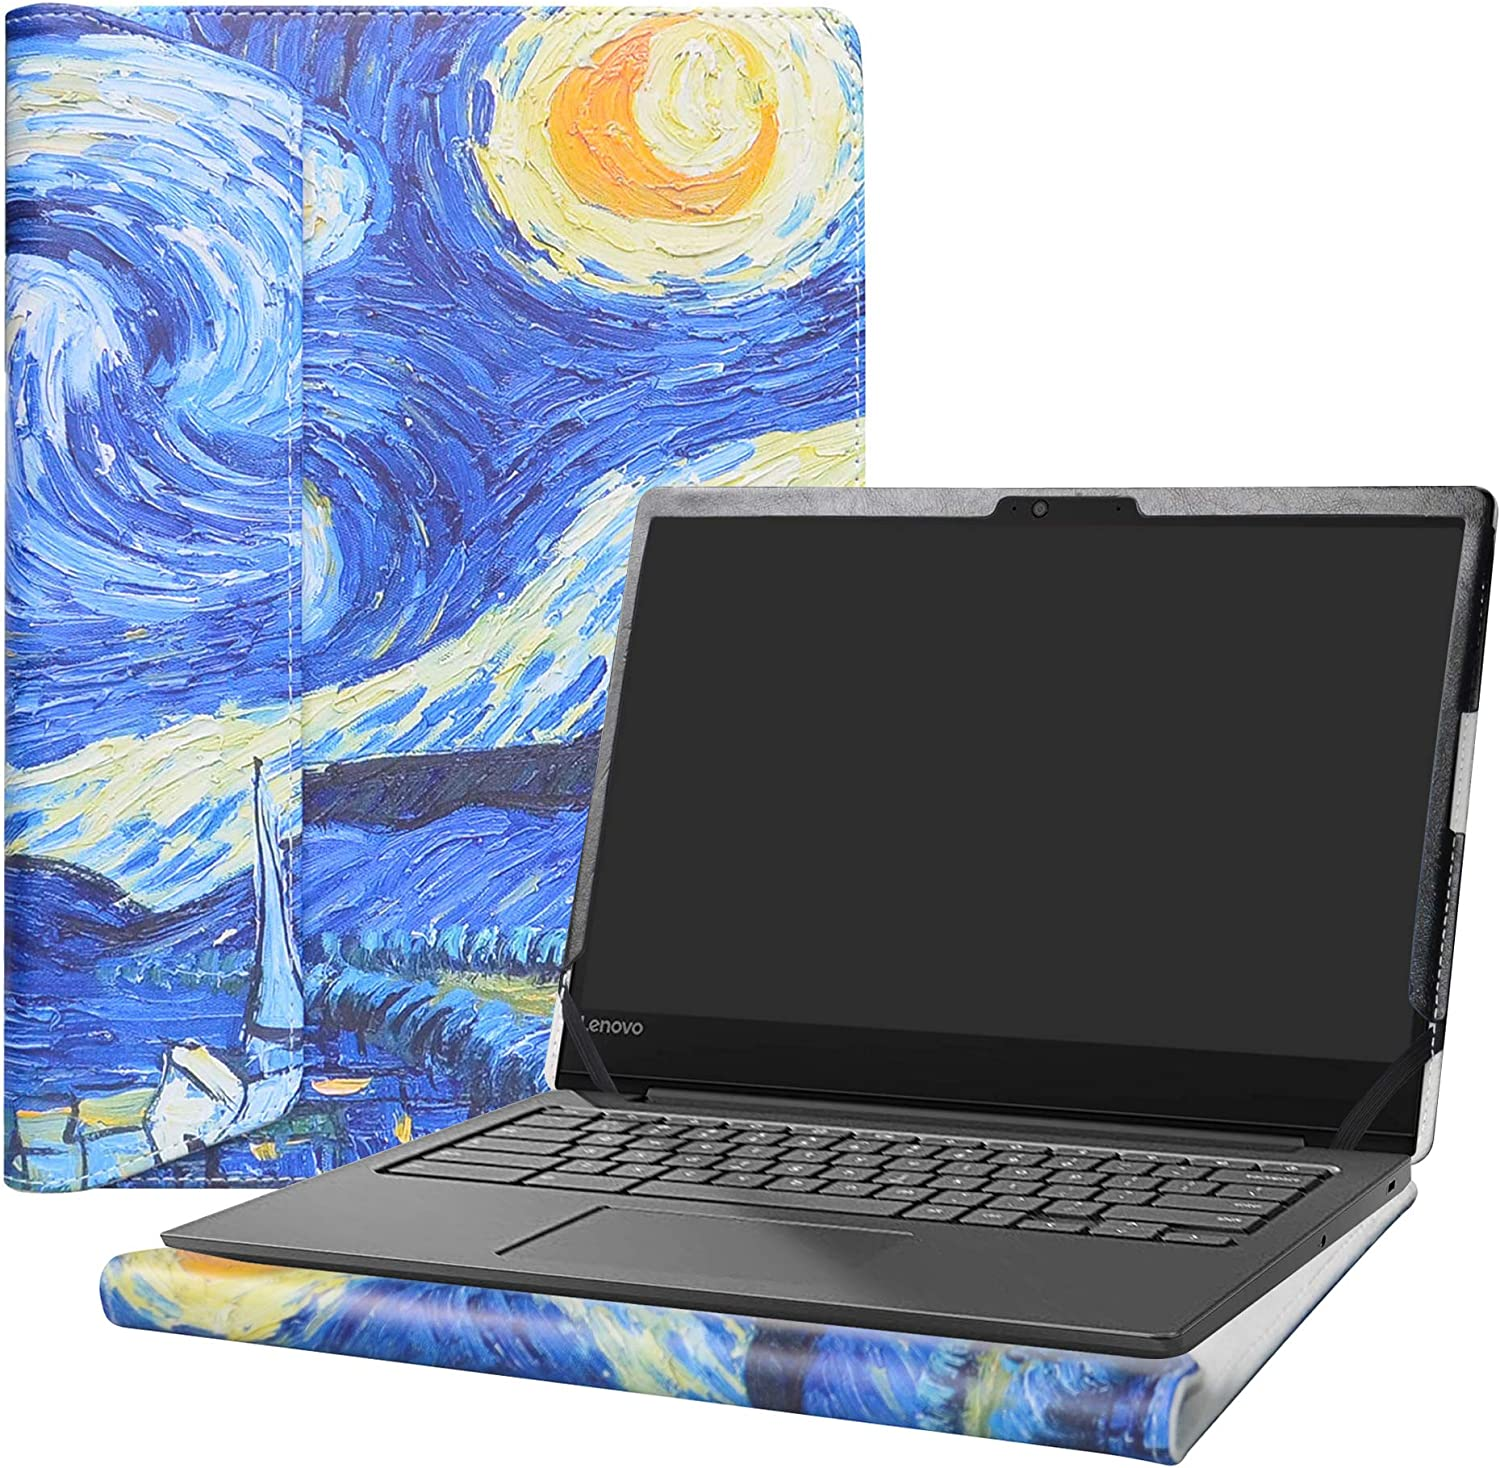 "Alapmk Protective Case Cover For 14"" Lenovo Chromebook S330 / Lenovo ideapad S340 14 S340-14IWL S340-14API S340-14IIL Series Laptop[Note:Not fit Lenovo Chromebook C330 C340],Starry Night"